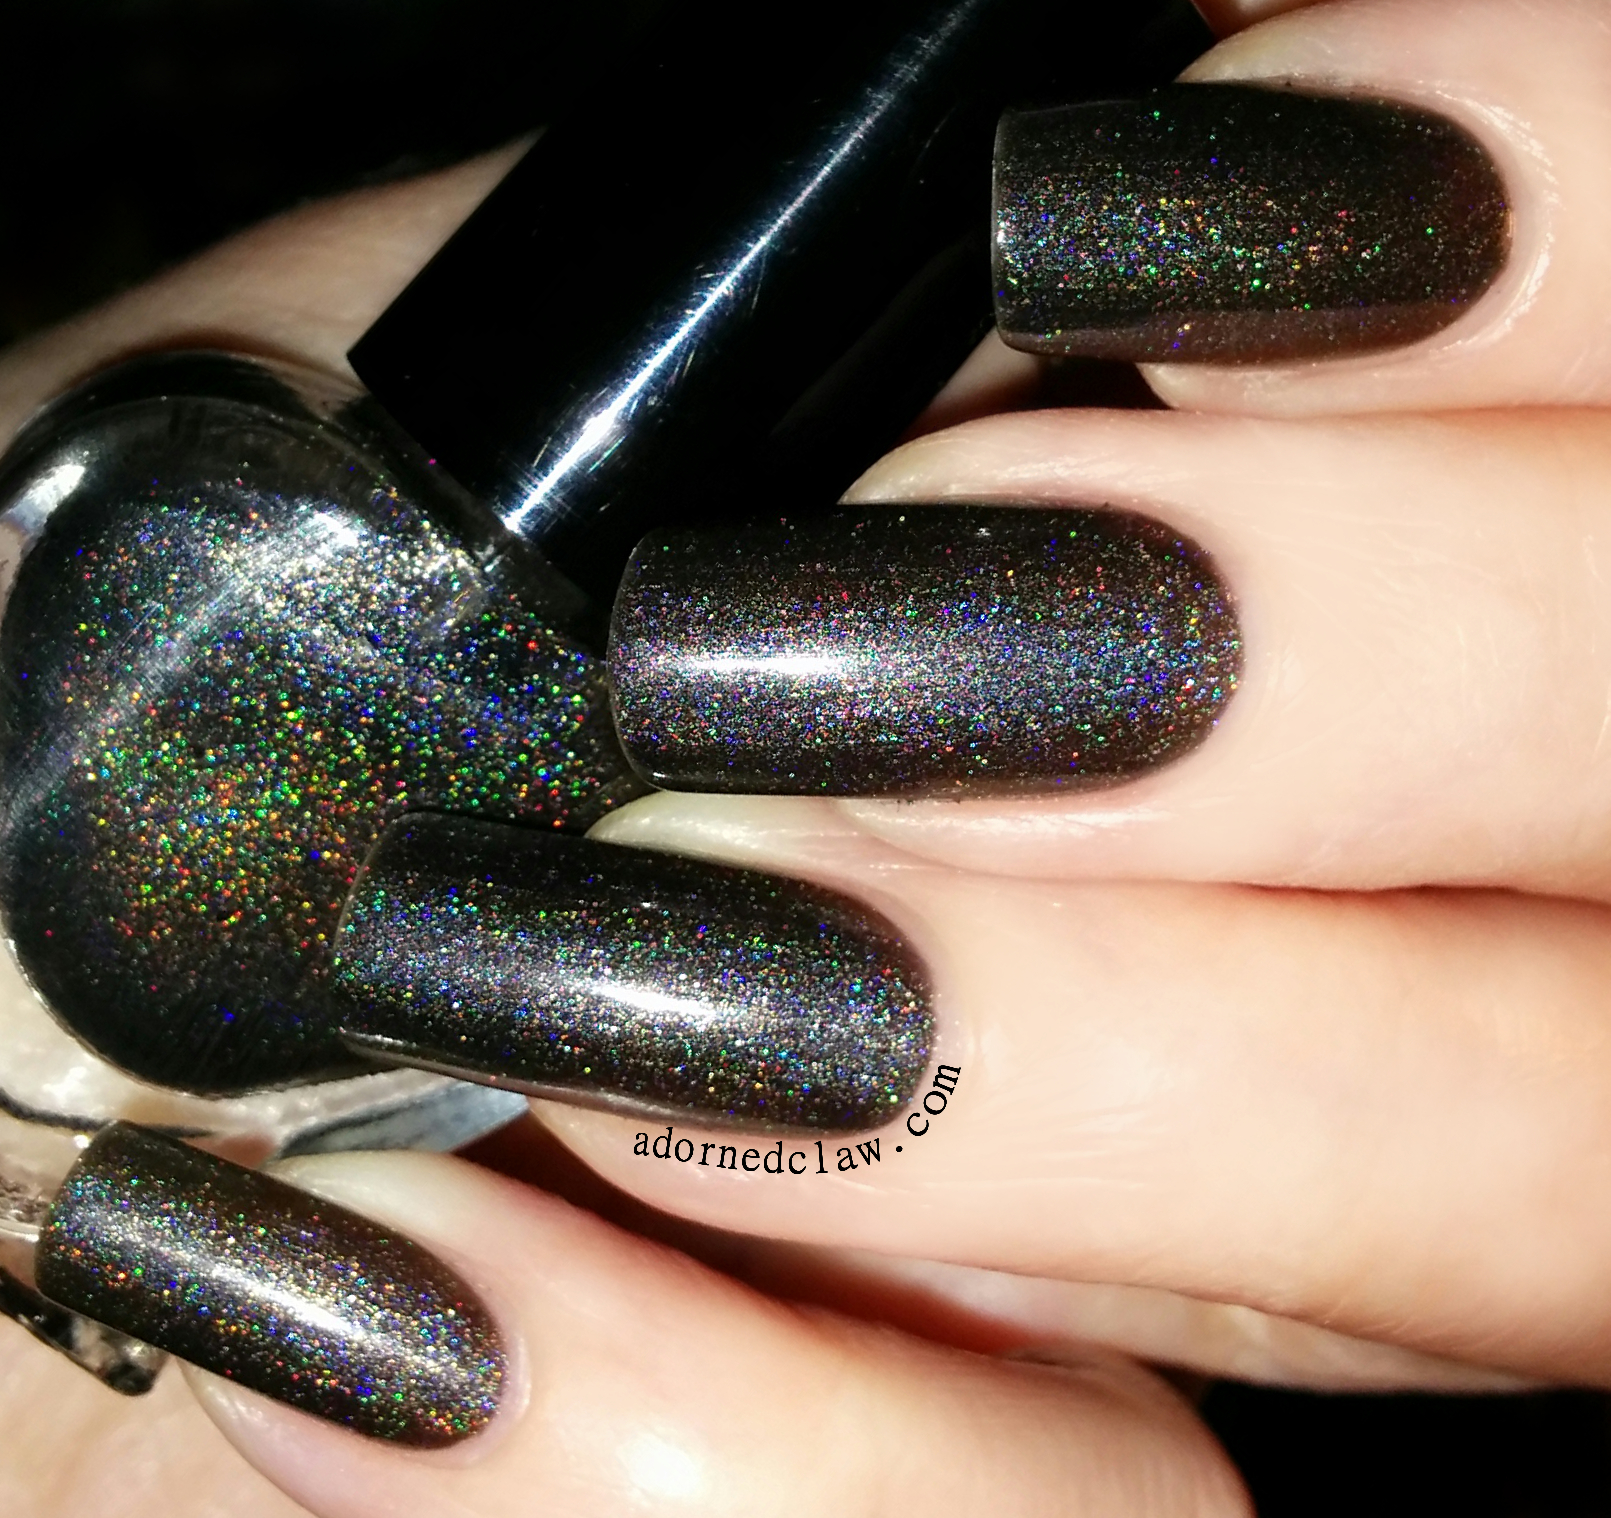 Franken Polish | The Adorned Claw